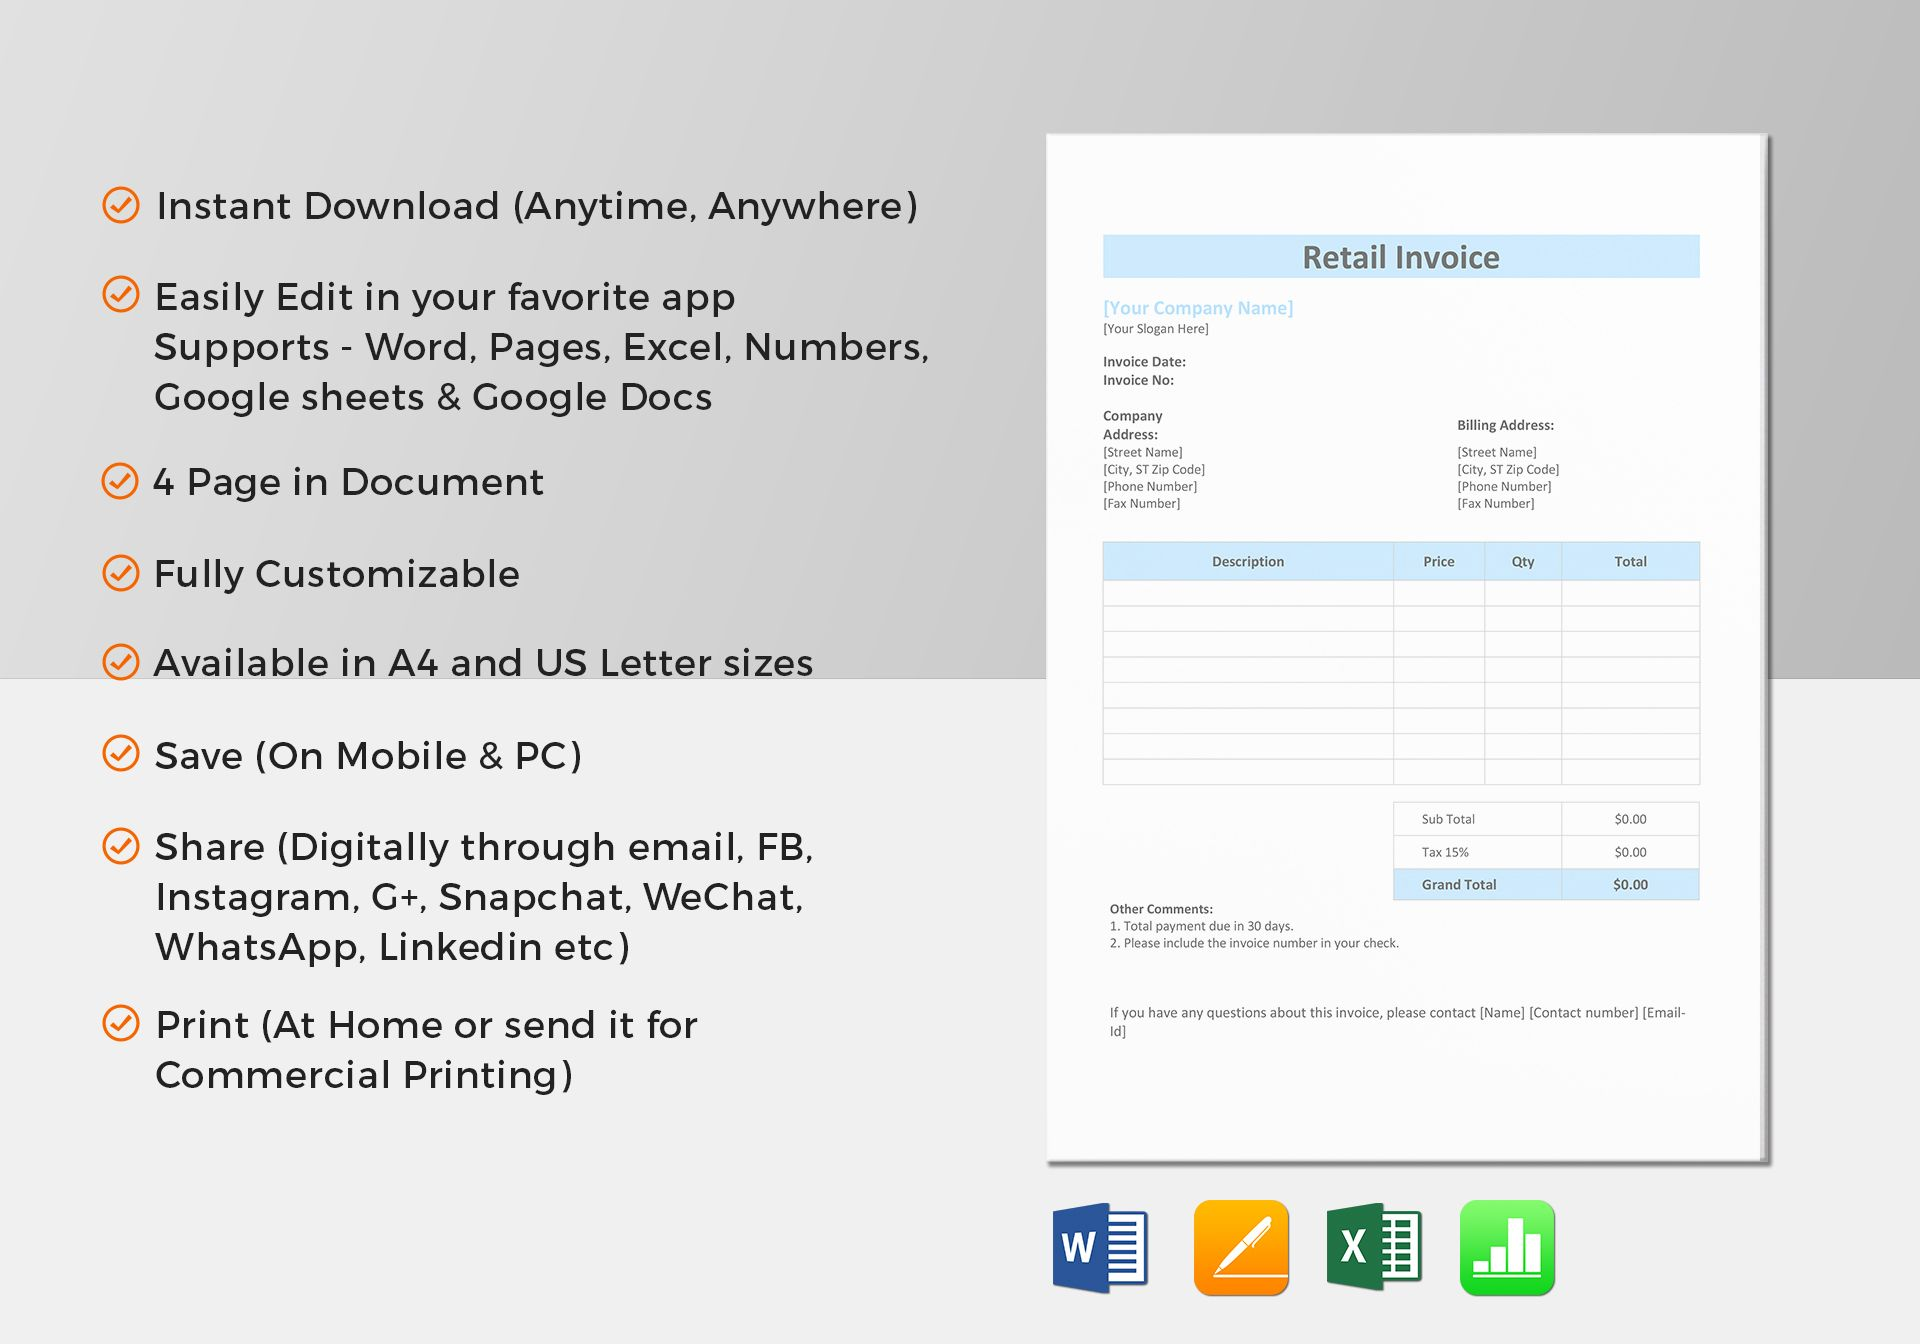 retail invoice template in word excel apple pages numbers. Black Bedroom Furniture Sets. Home Design Ideas